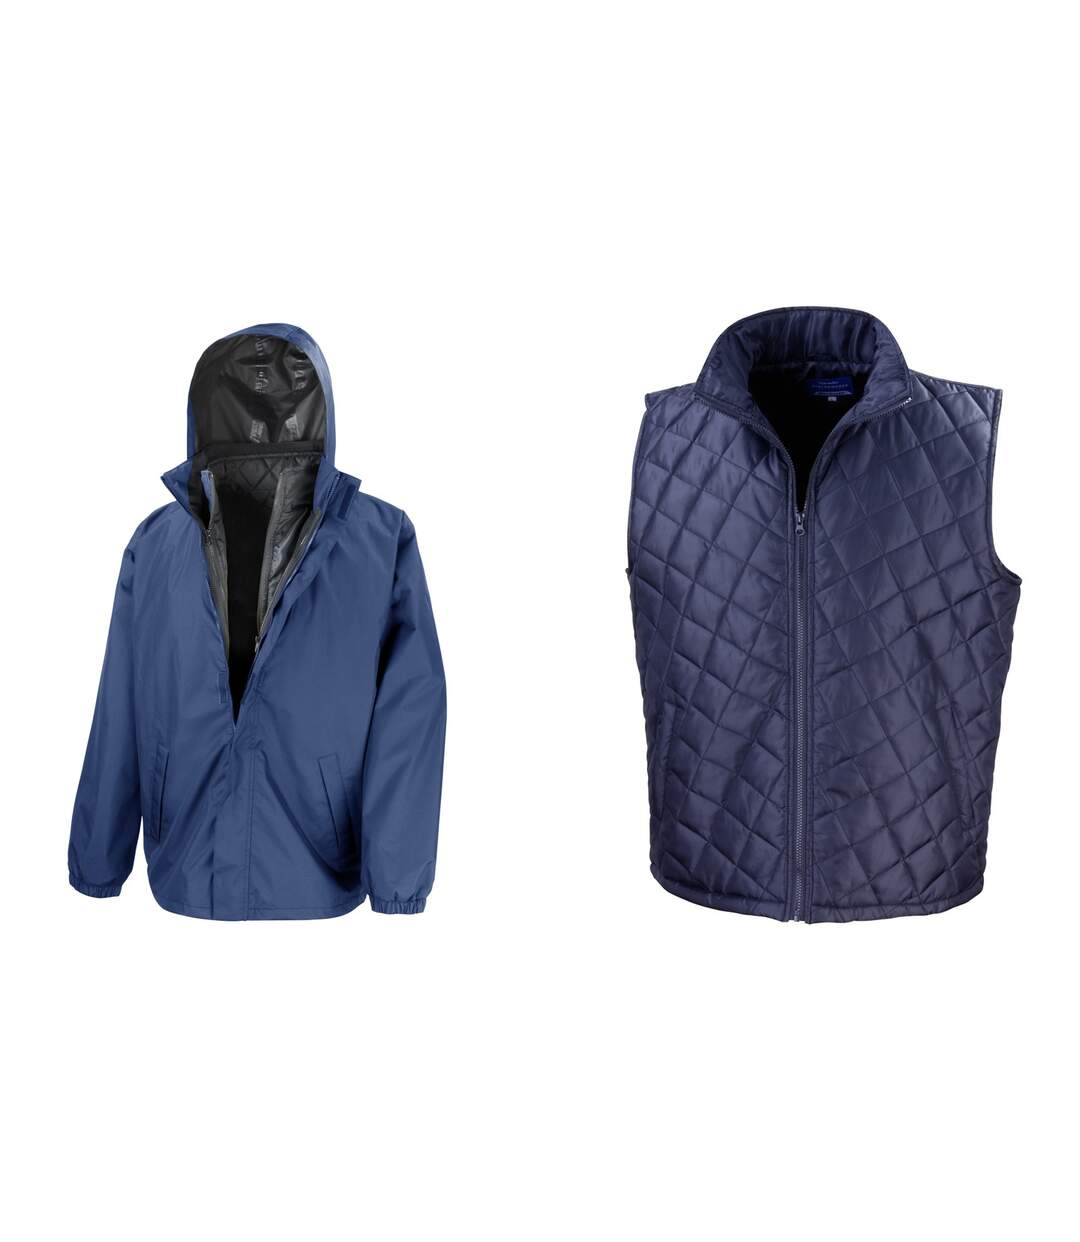 Result Mens Core 3-in-1 Jacket With Quilted Bodywarmer Jacket (Navy Blue) - UTBC908